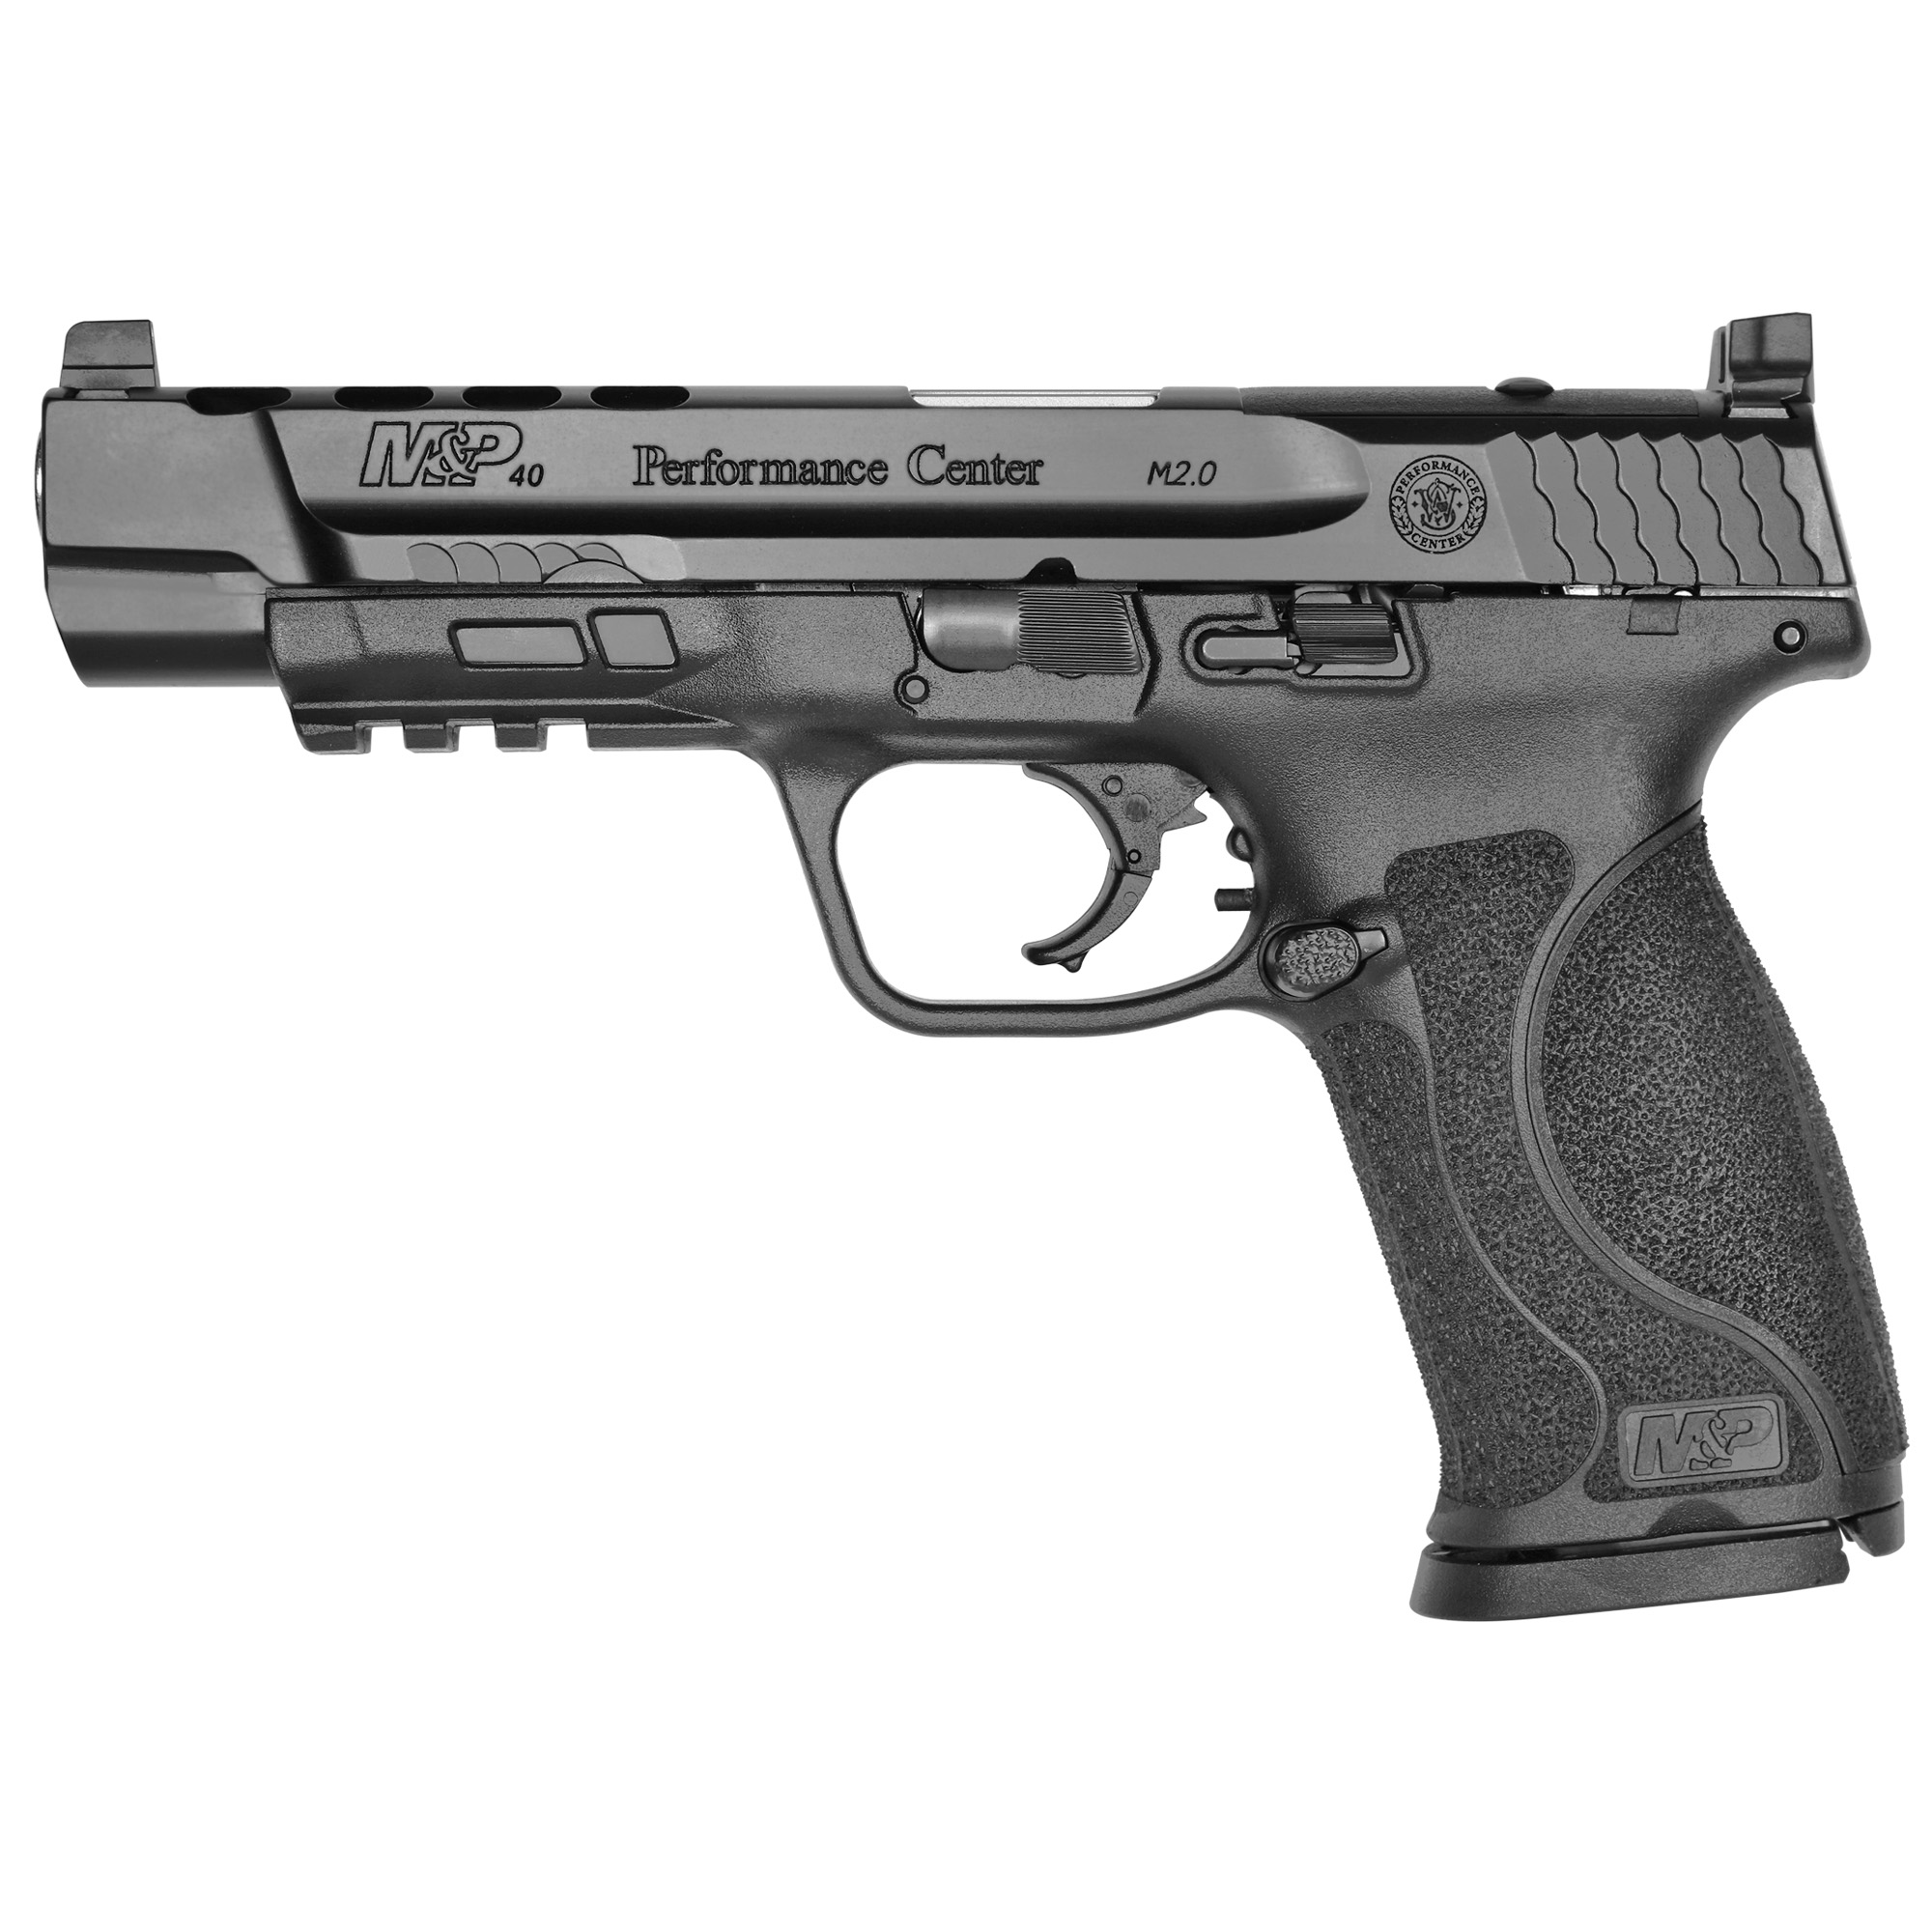 Smith and Wesson M&P40 M2.0 PC PORTED CORE 40 S&W